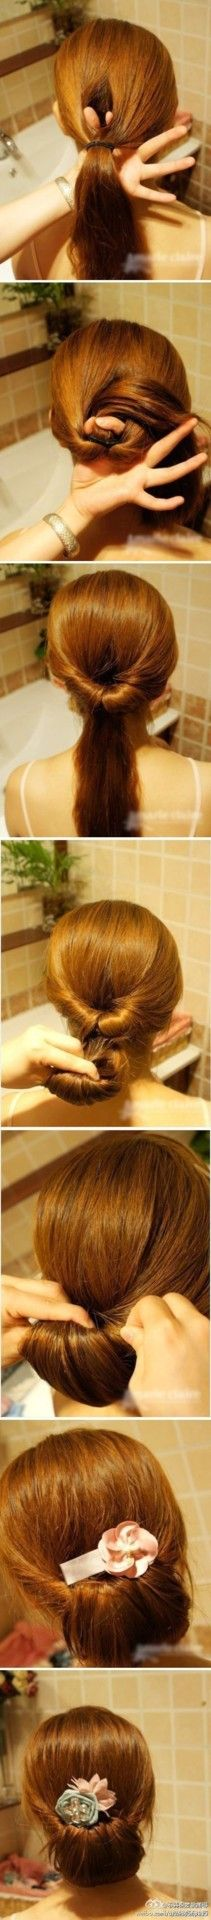 I totally have long enough hair to do this!